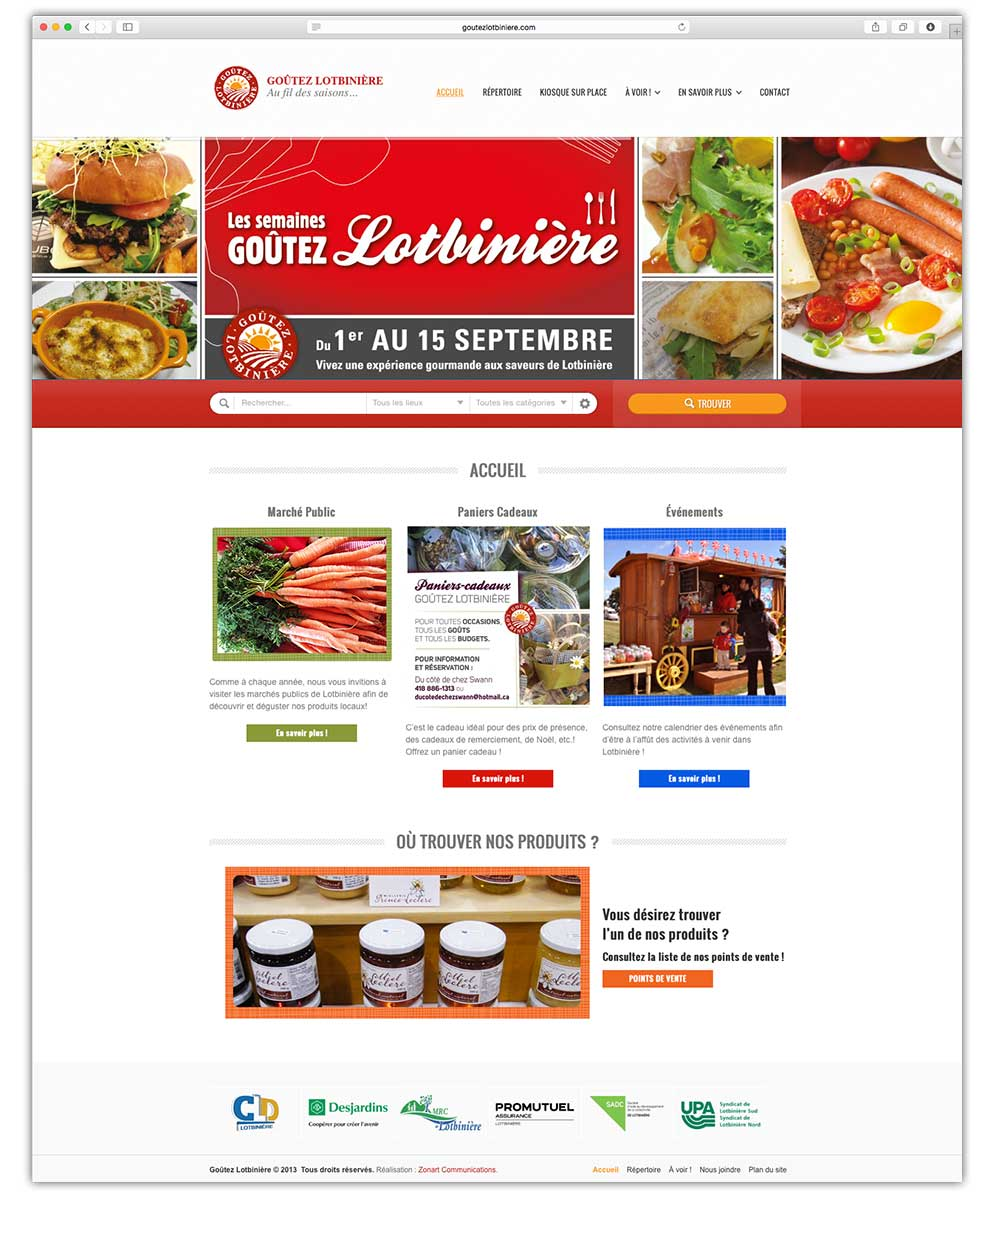 Goutez Lotbiniere - web | Design by Kaylynne Johnson - web & design | www.kaylynnejohnson.com